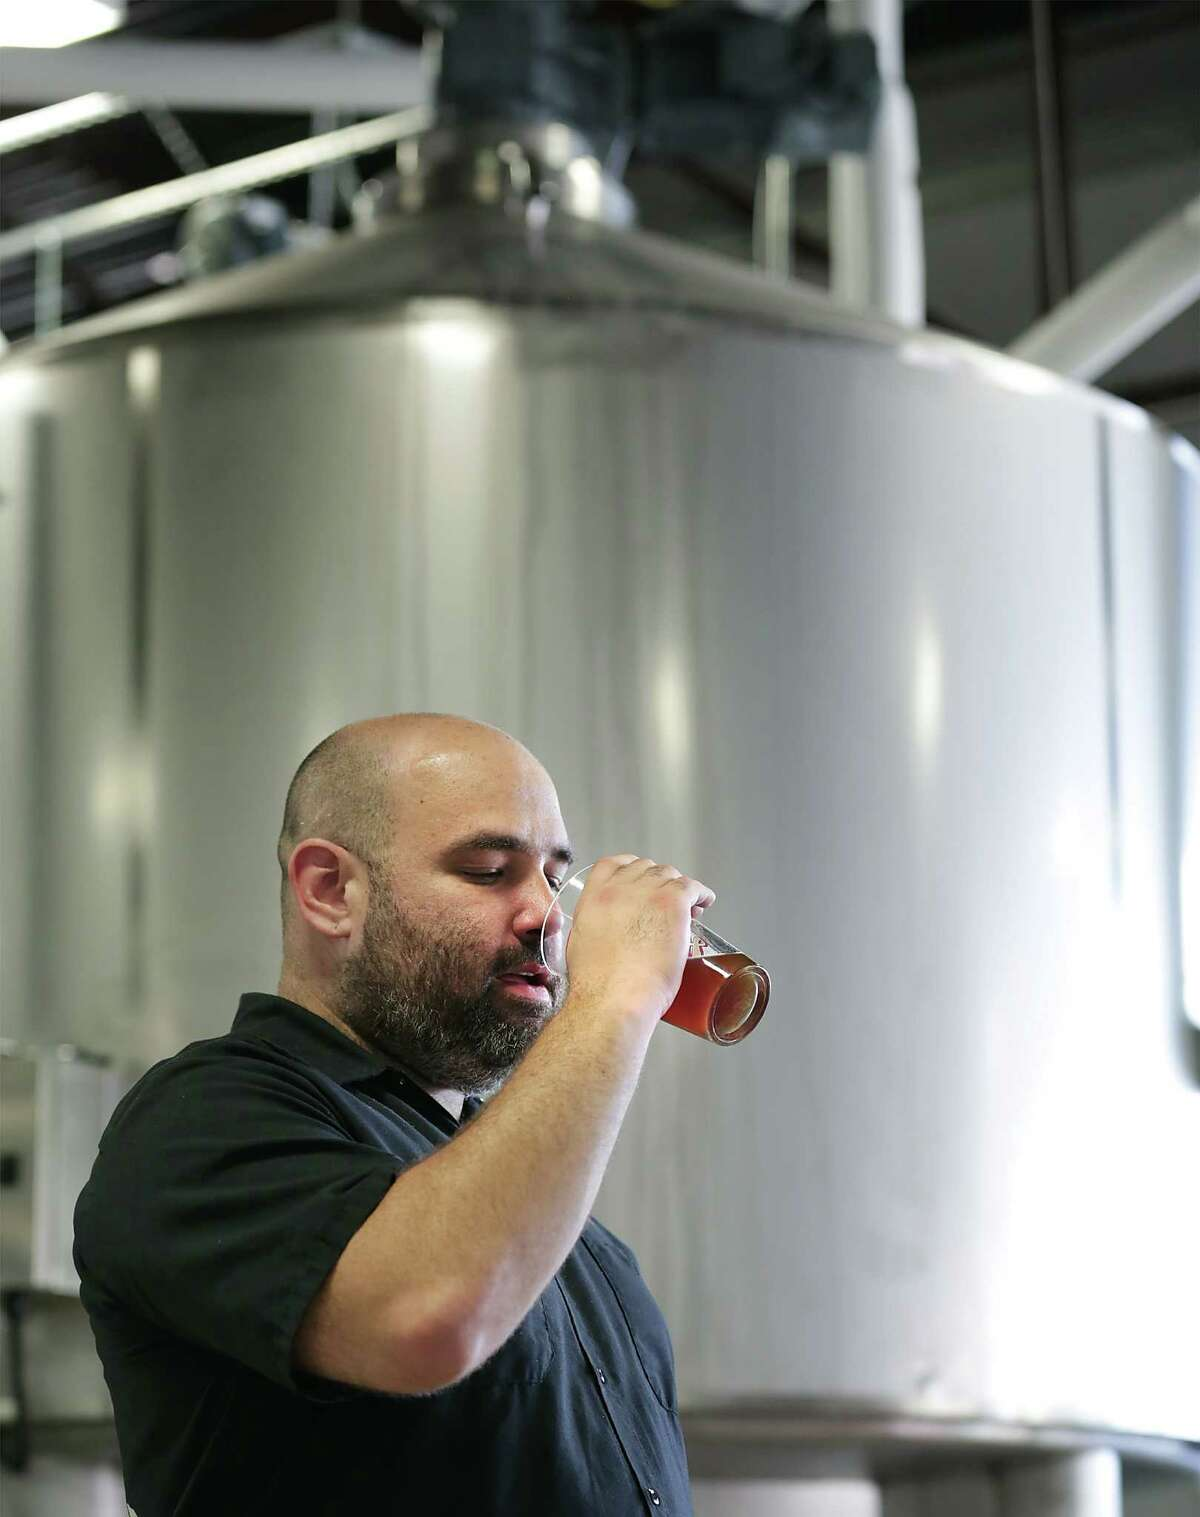 Freetail Brewing Co. founder and CEO Scott Metzger tastes a batch of wort. He says,